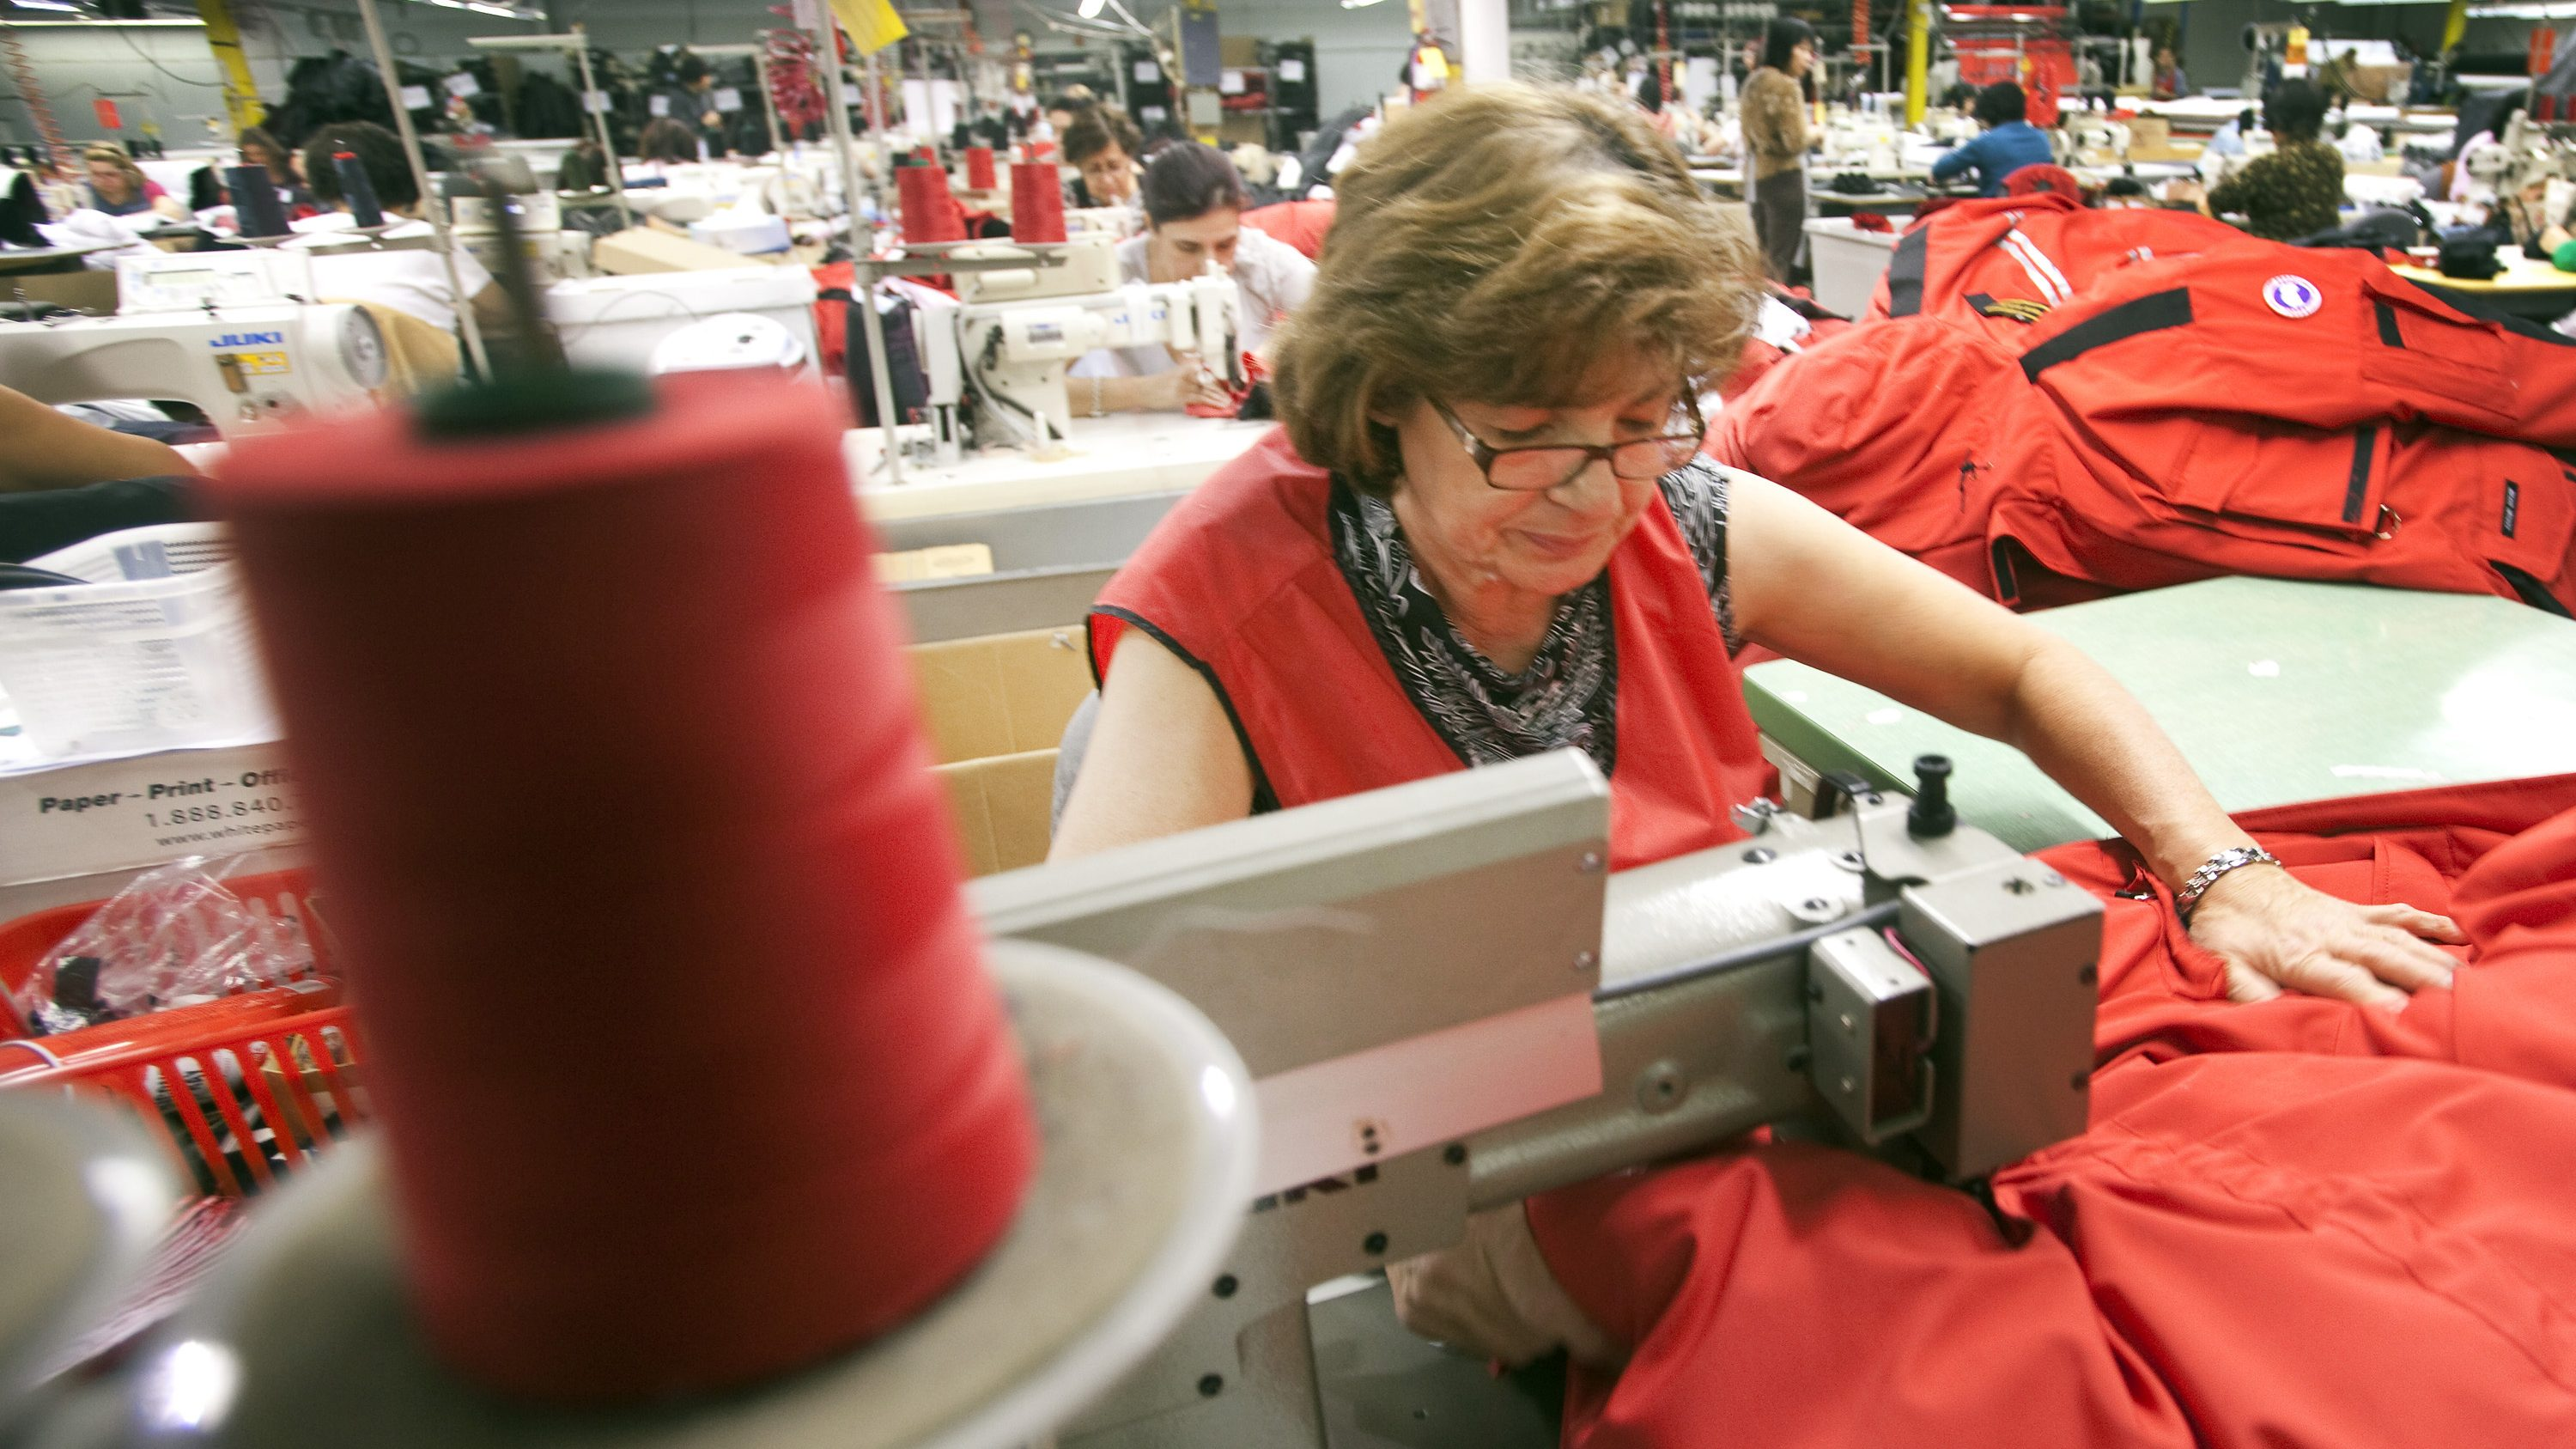 Paulina Botelho, a seamstress for Canada Goose, pieces together outerwear on the manufacturing floor of the company's facility in Toronto